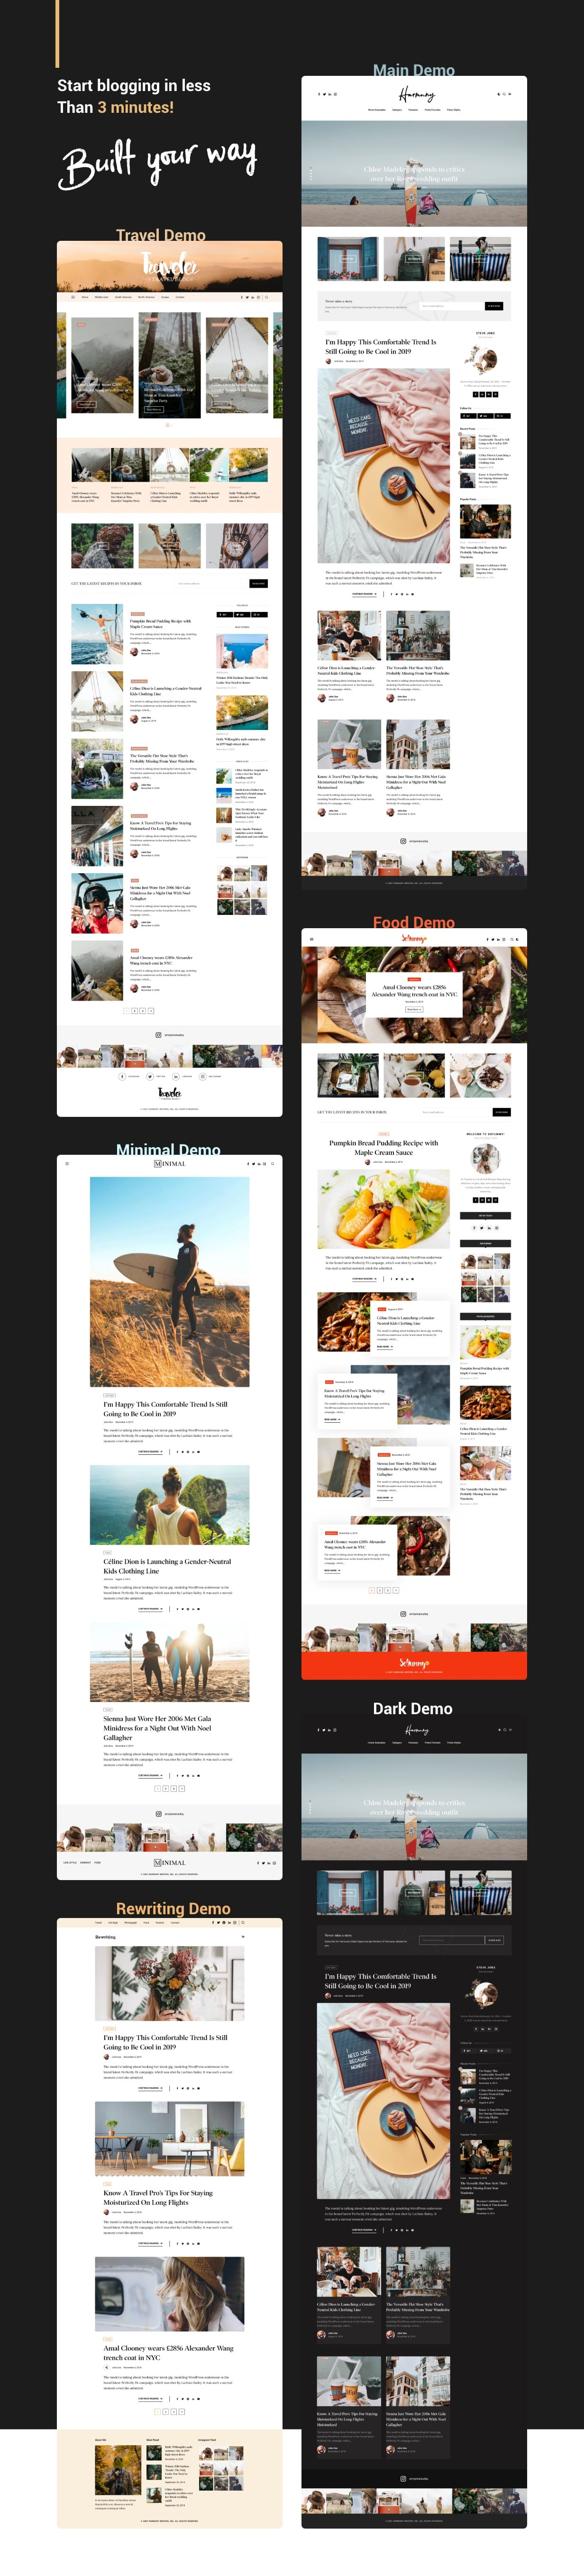 Harmuny - Modern WordPress Blog Theme - 4